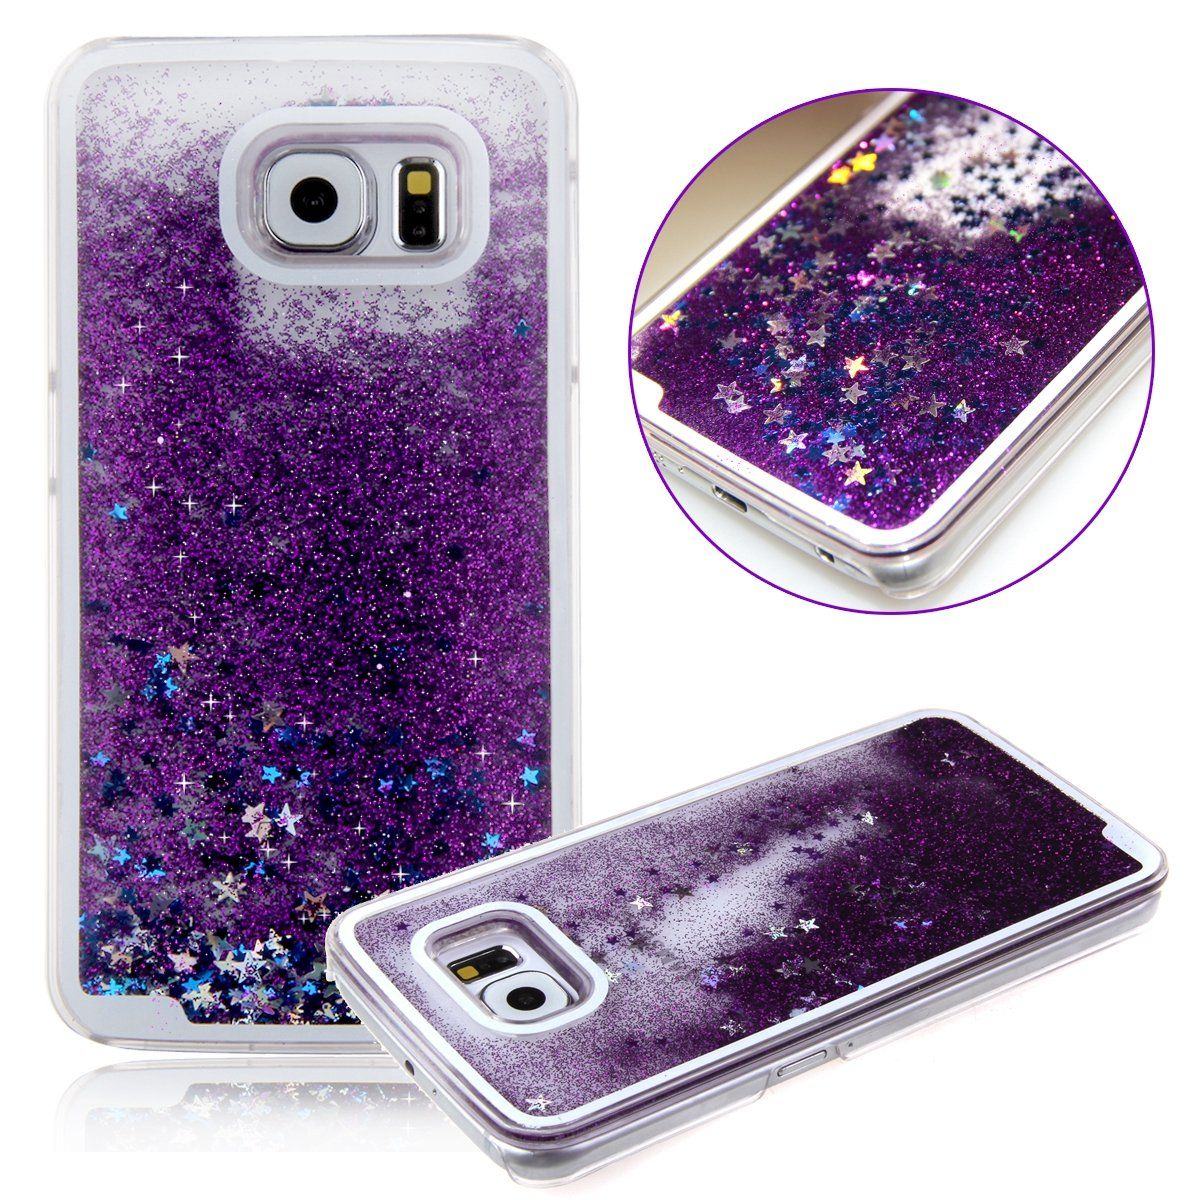 sports shoes 310d6 15a45 Amazon.com: Funny Samsung Galaxy S6 Edge Case,S6 Edge Glitter Case ...